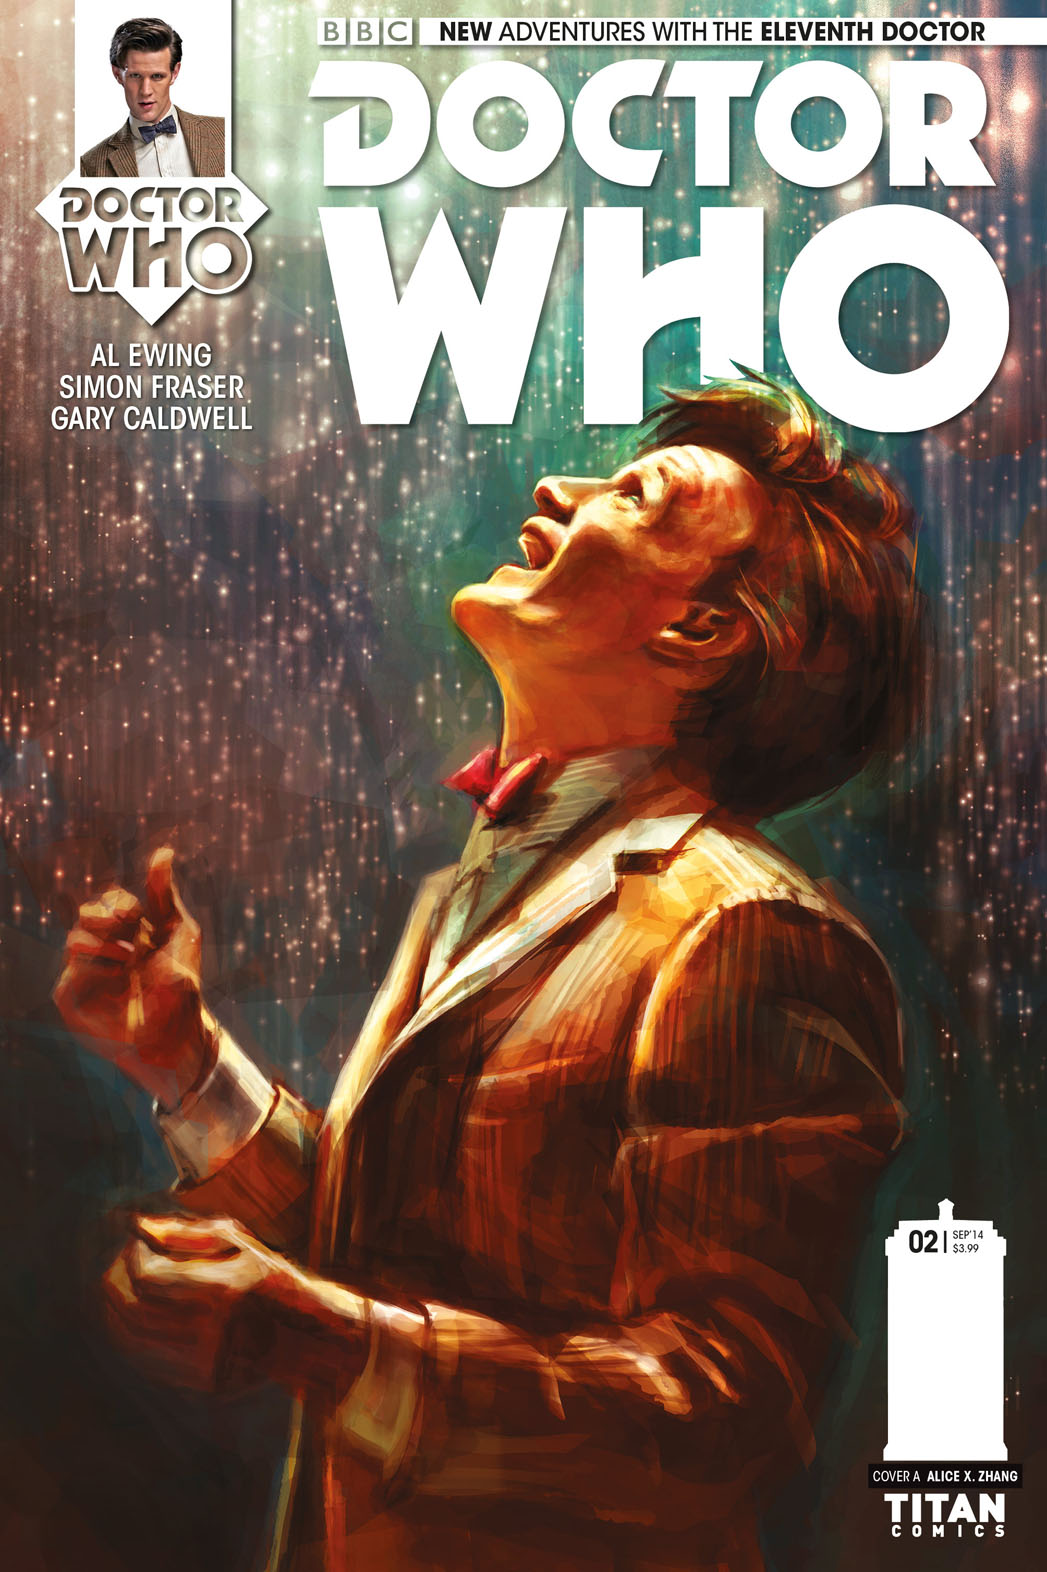 Doctor Who Cover 2 - P 2014